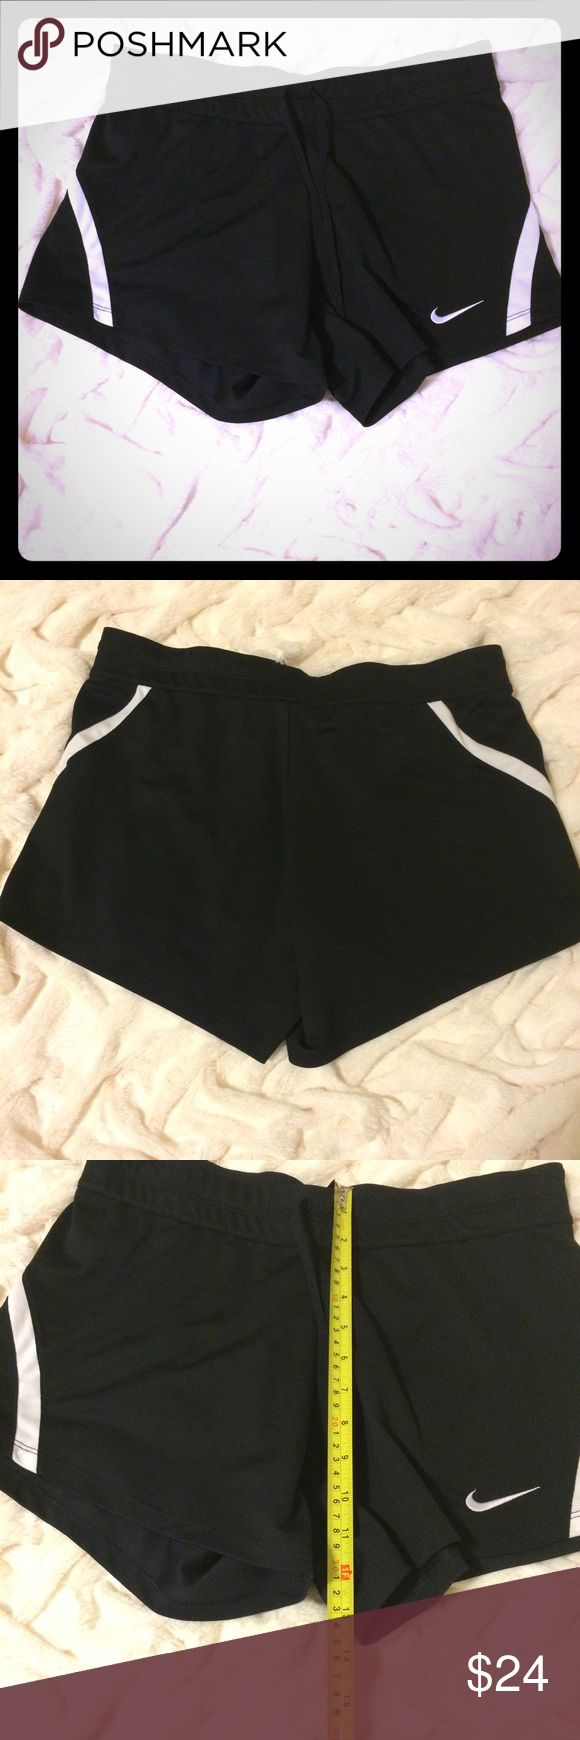 """NWOT Nike Dri Fit shorts NWOT Nike Dri fit shorts. Black with white lines. Elastic waist with draw string. Hidden key pocket in back. 13.5"""" length. 100% polyester. New without tags. Perfect condition Nike Shorts"""